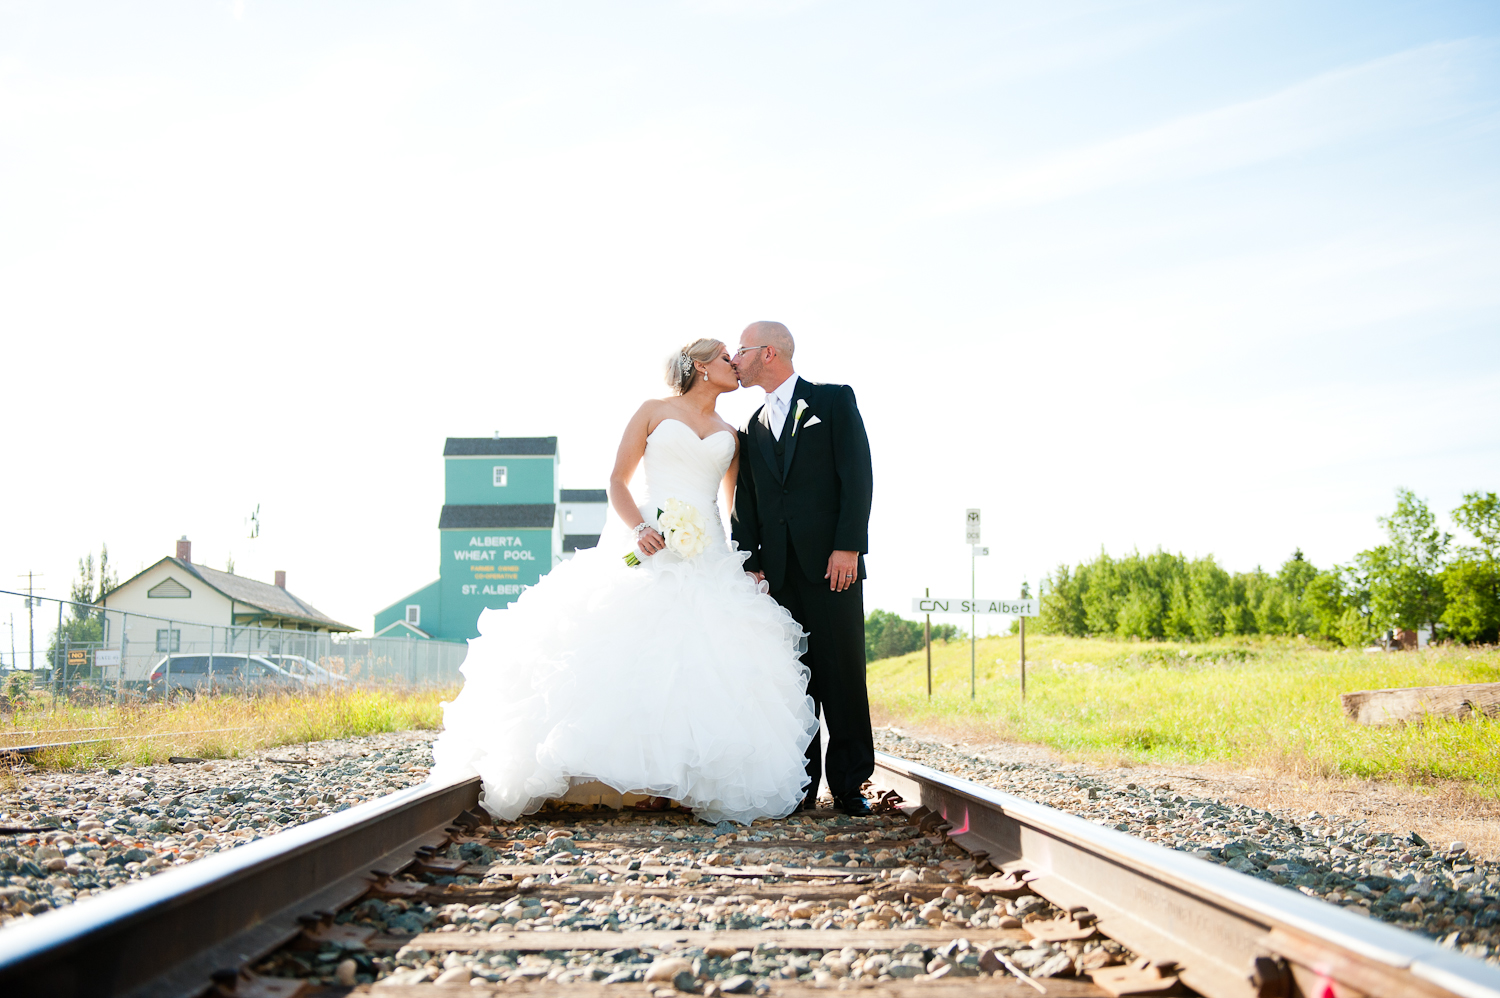 sean-williams-wedding-lifestyle-photography-edmonton-photographer-professional-72.jpg